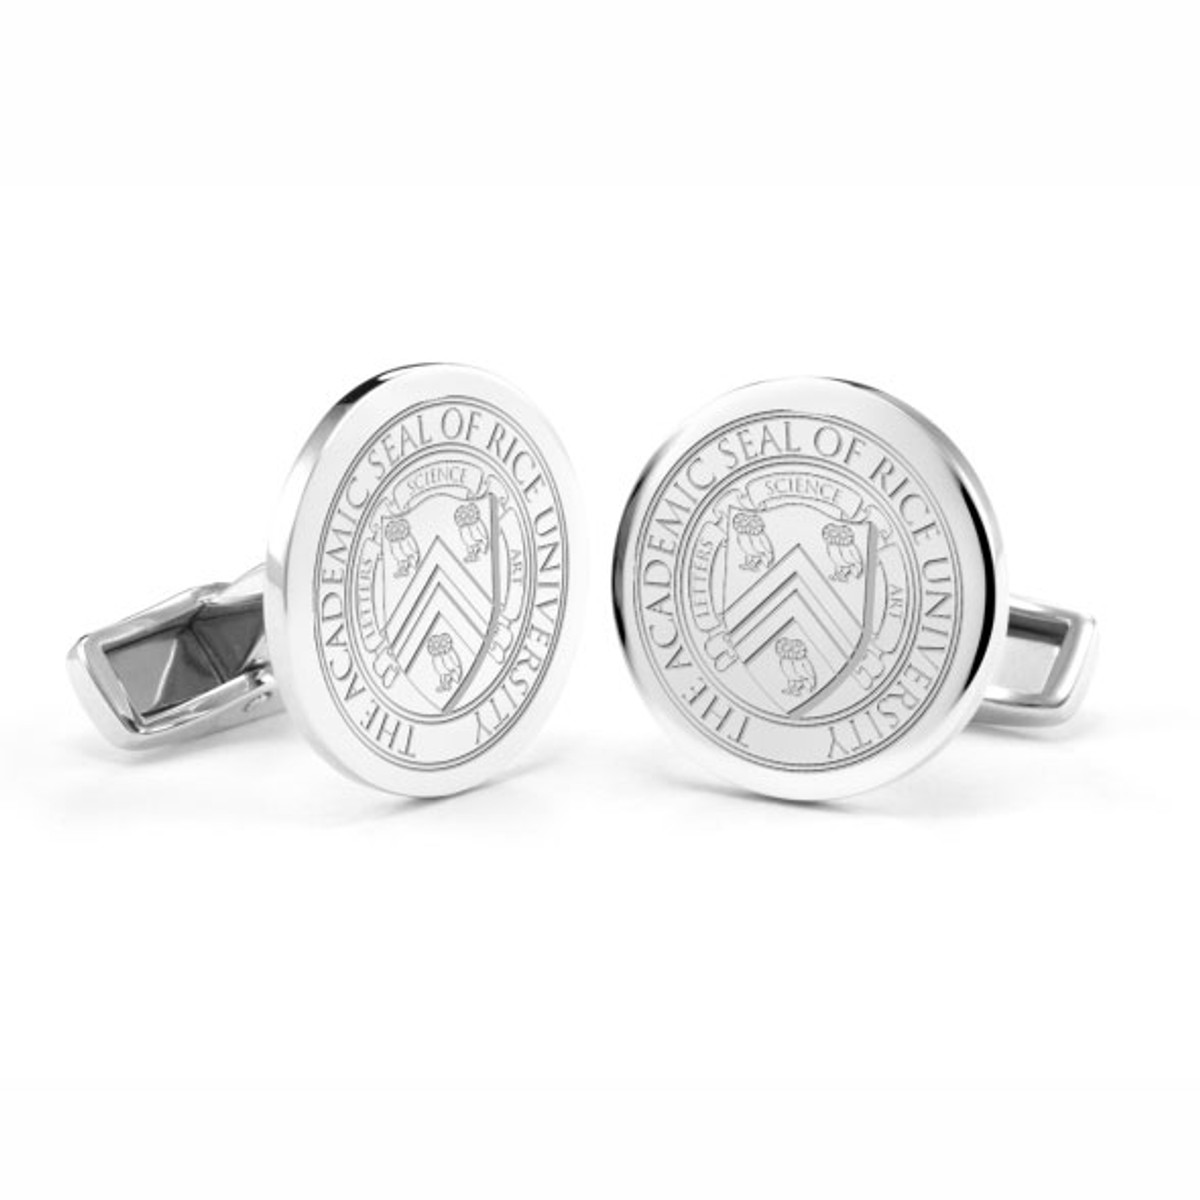 rice university cufflinks in sterling silver